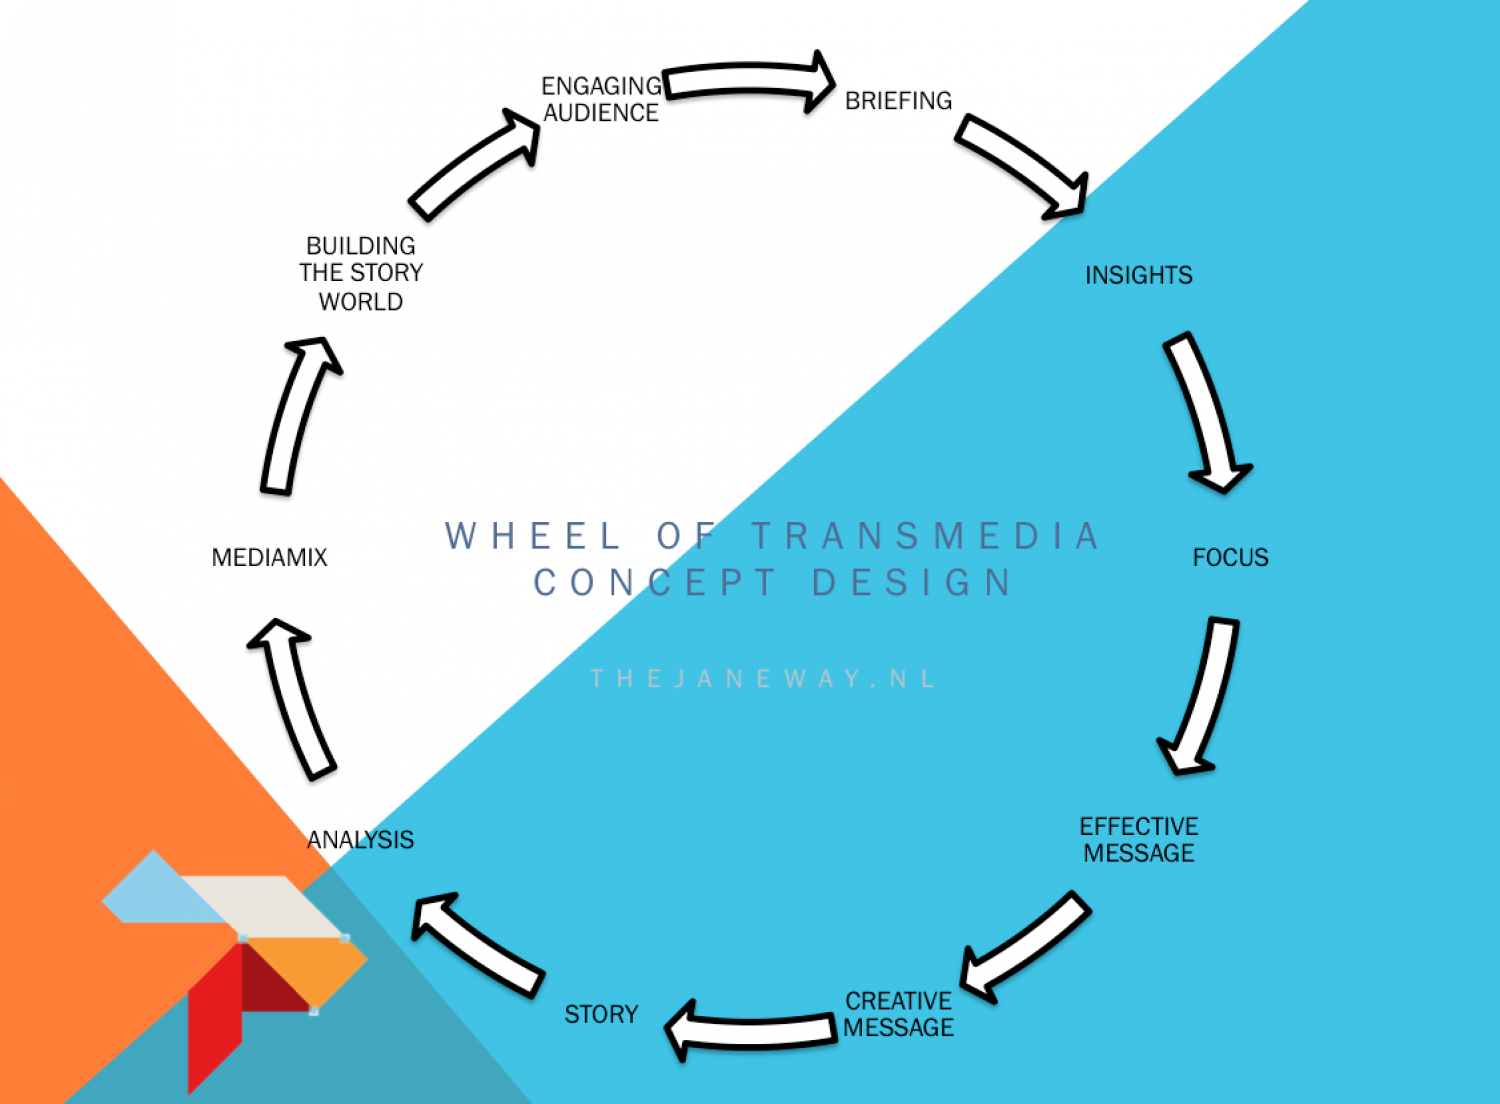 Wheel of Transmedia Concept Design Infographic